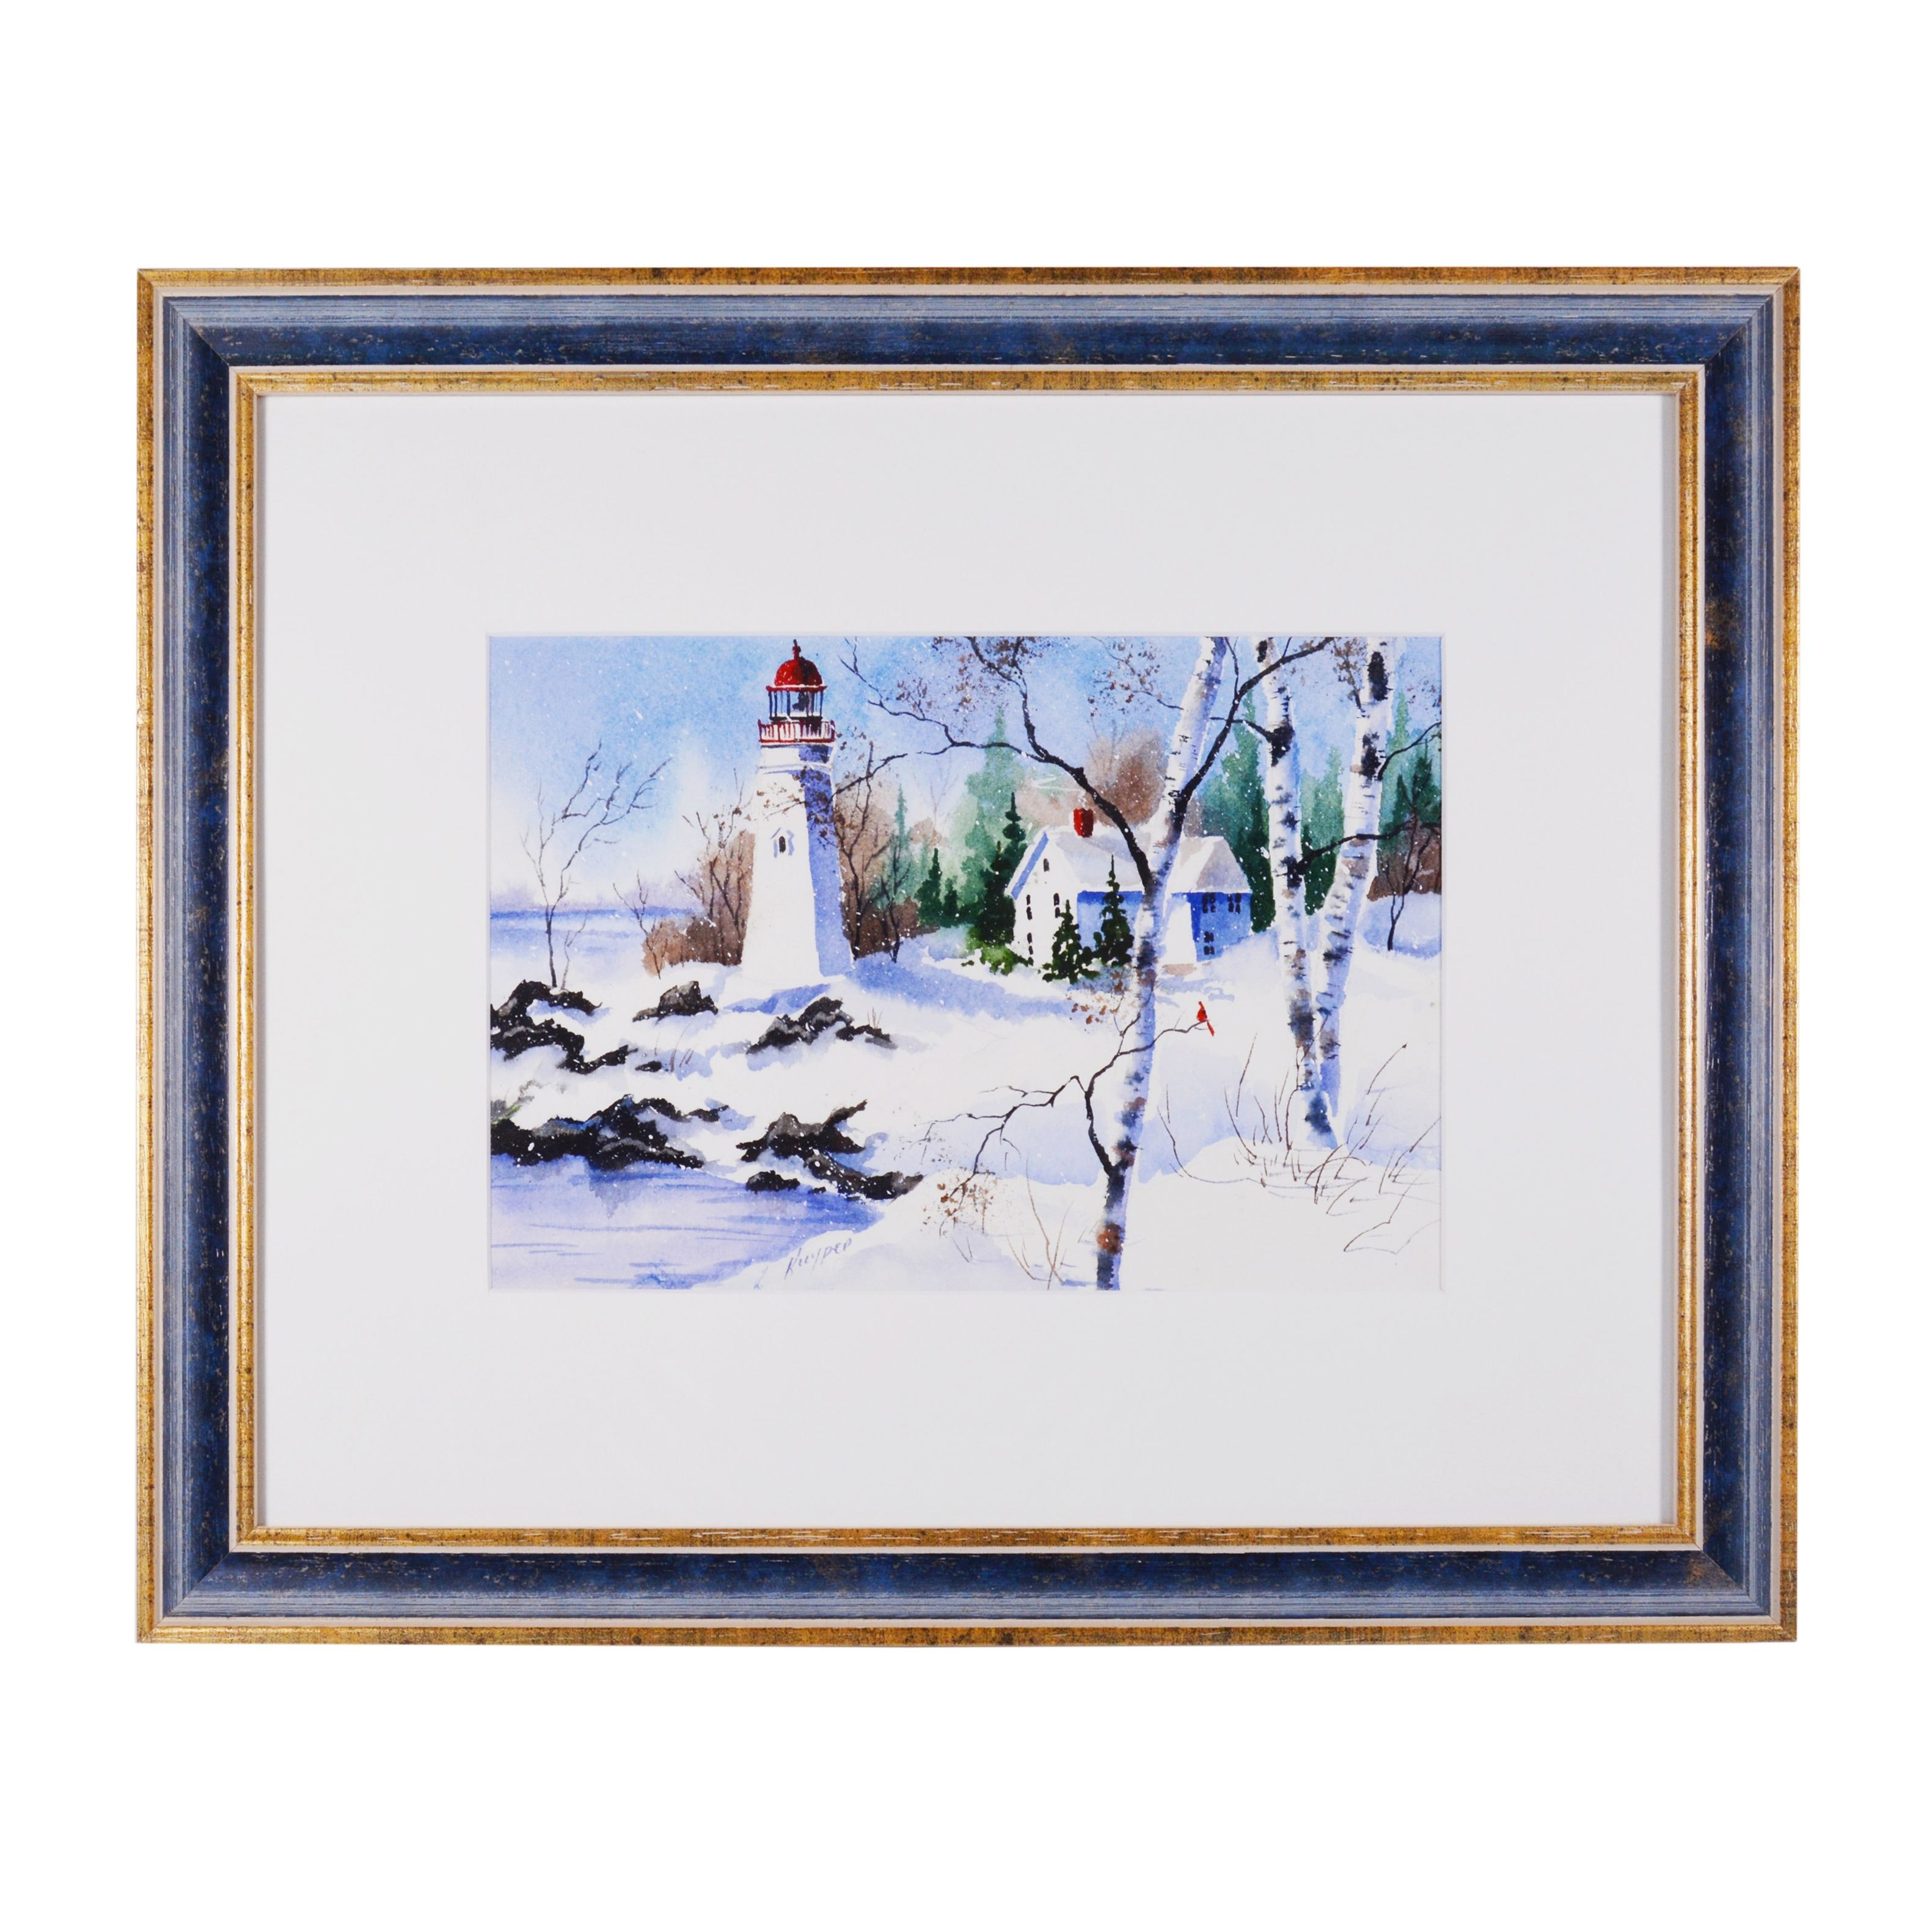 Kathy Kuyper Watercolor Painting of a Winter Scene